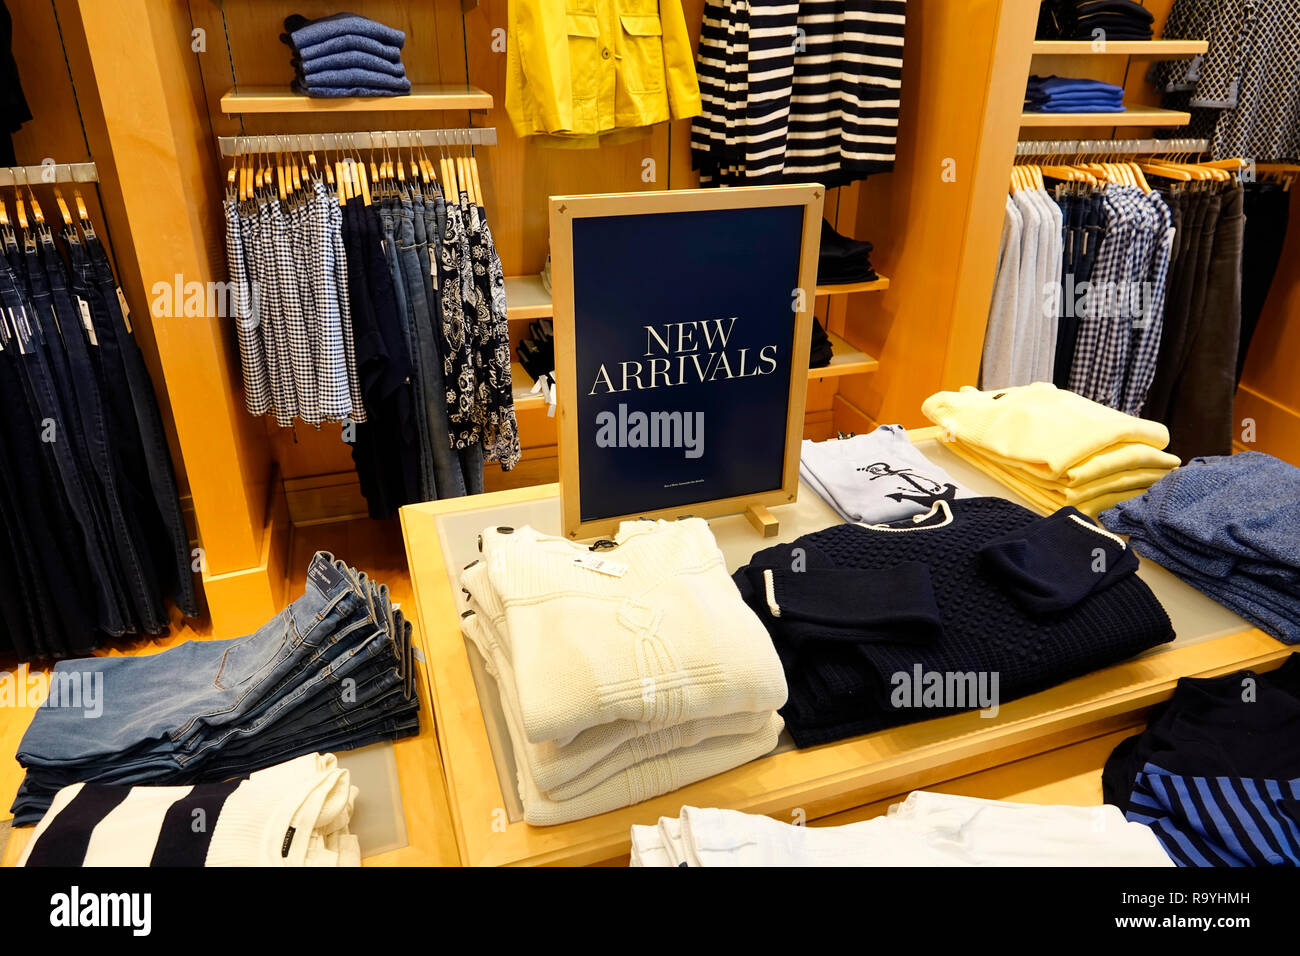 florida fort ft lauderdale pembroke pines shops at pembroke gardens mall talbots womens clothing fashion inside interior display sale product R9YHMH - Banana Republic Shops At Pembroke Gardens